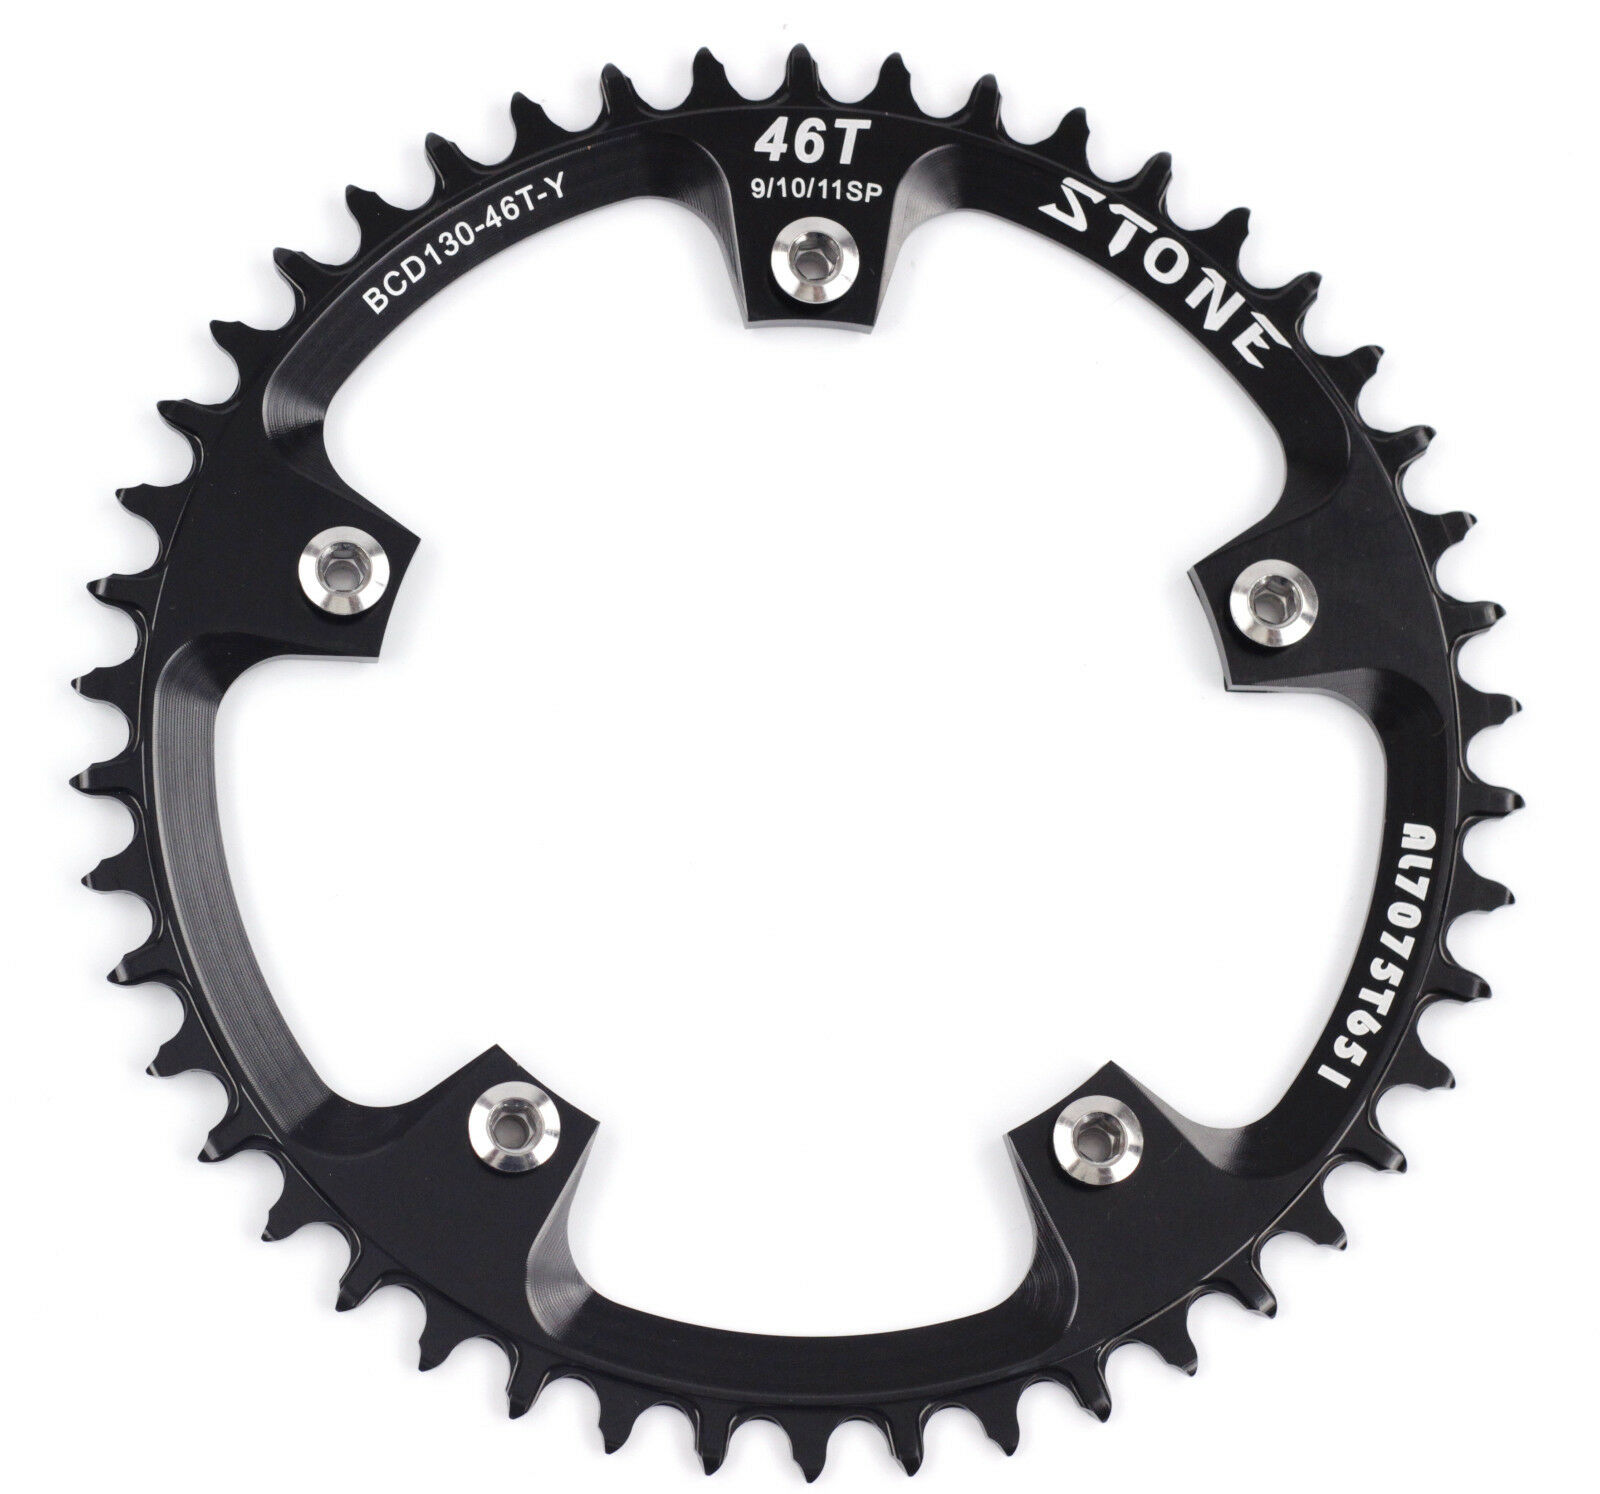 AL7075 Chainring Narrow Wide for Folding Bike Road bicycle BCD130mm